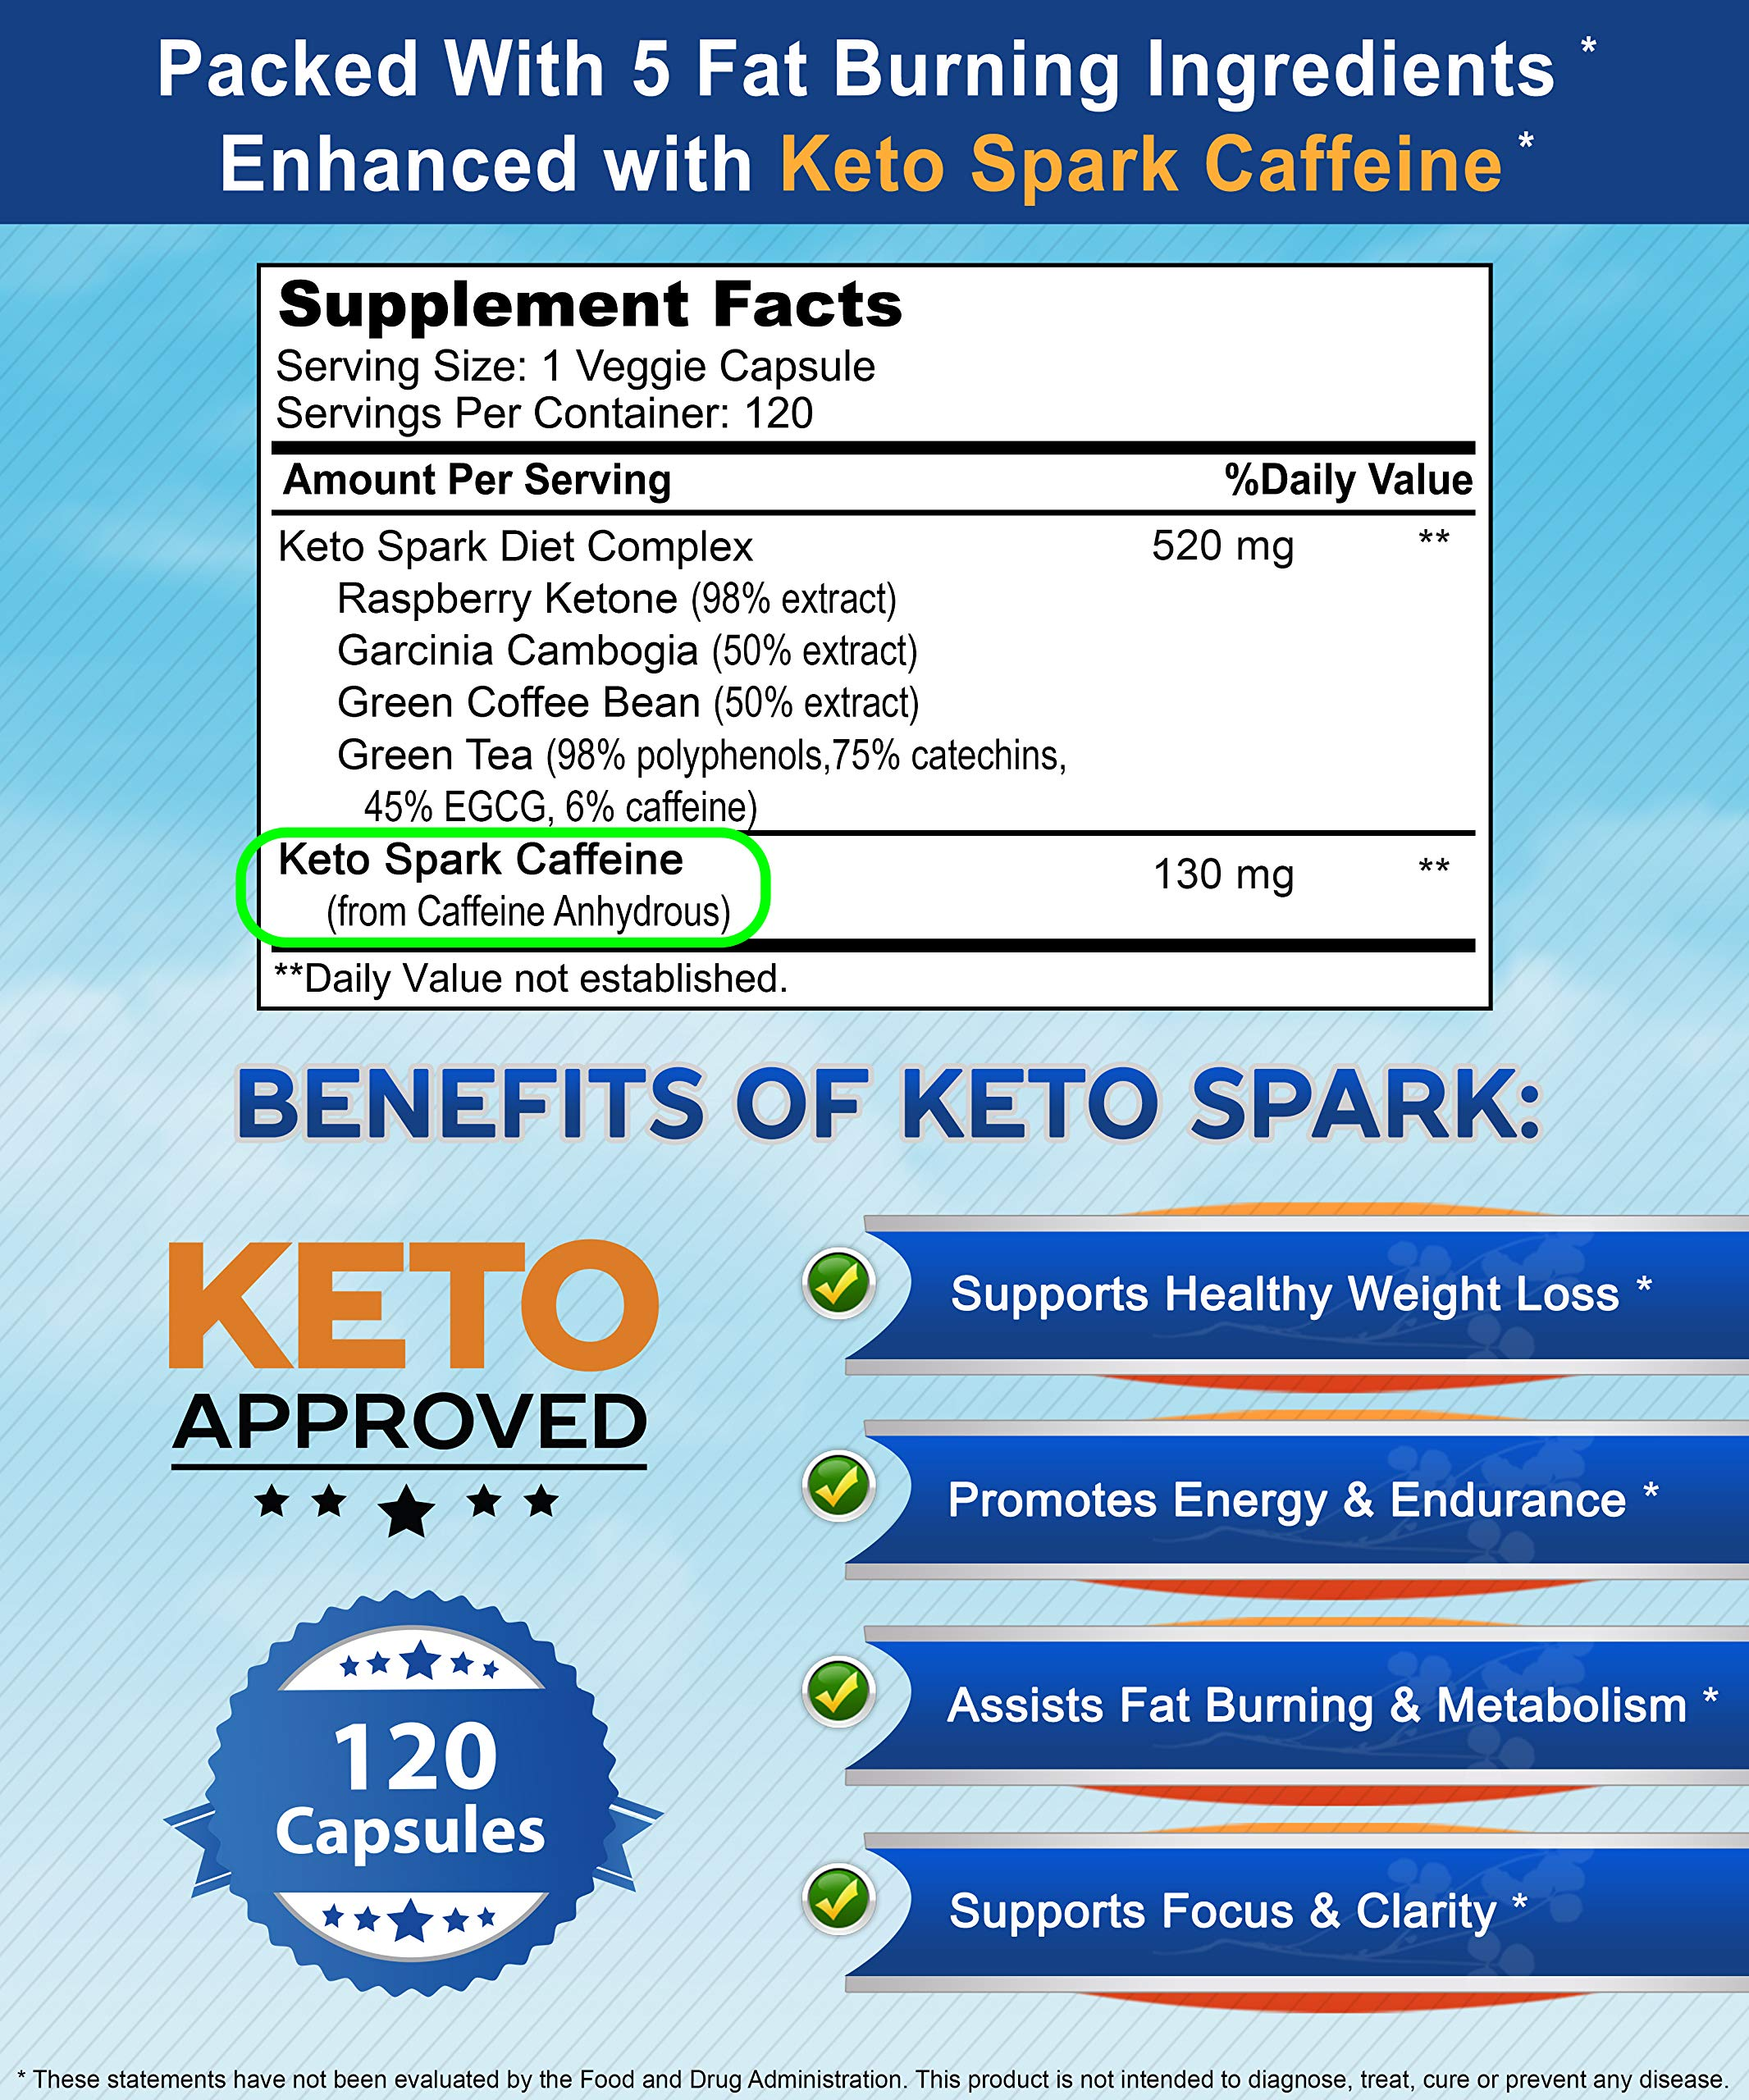 Keto Spark - Supplement for Weight Loss (120 Capsules) - Pills Approved for The Ketogenic & Paleo Diet - Helps Stay in Ketosis, Increase Energy & Focus - Caffeine & Ketones for Women & Men by aSquared Nutrition (Image #4)